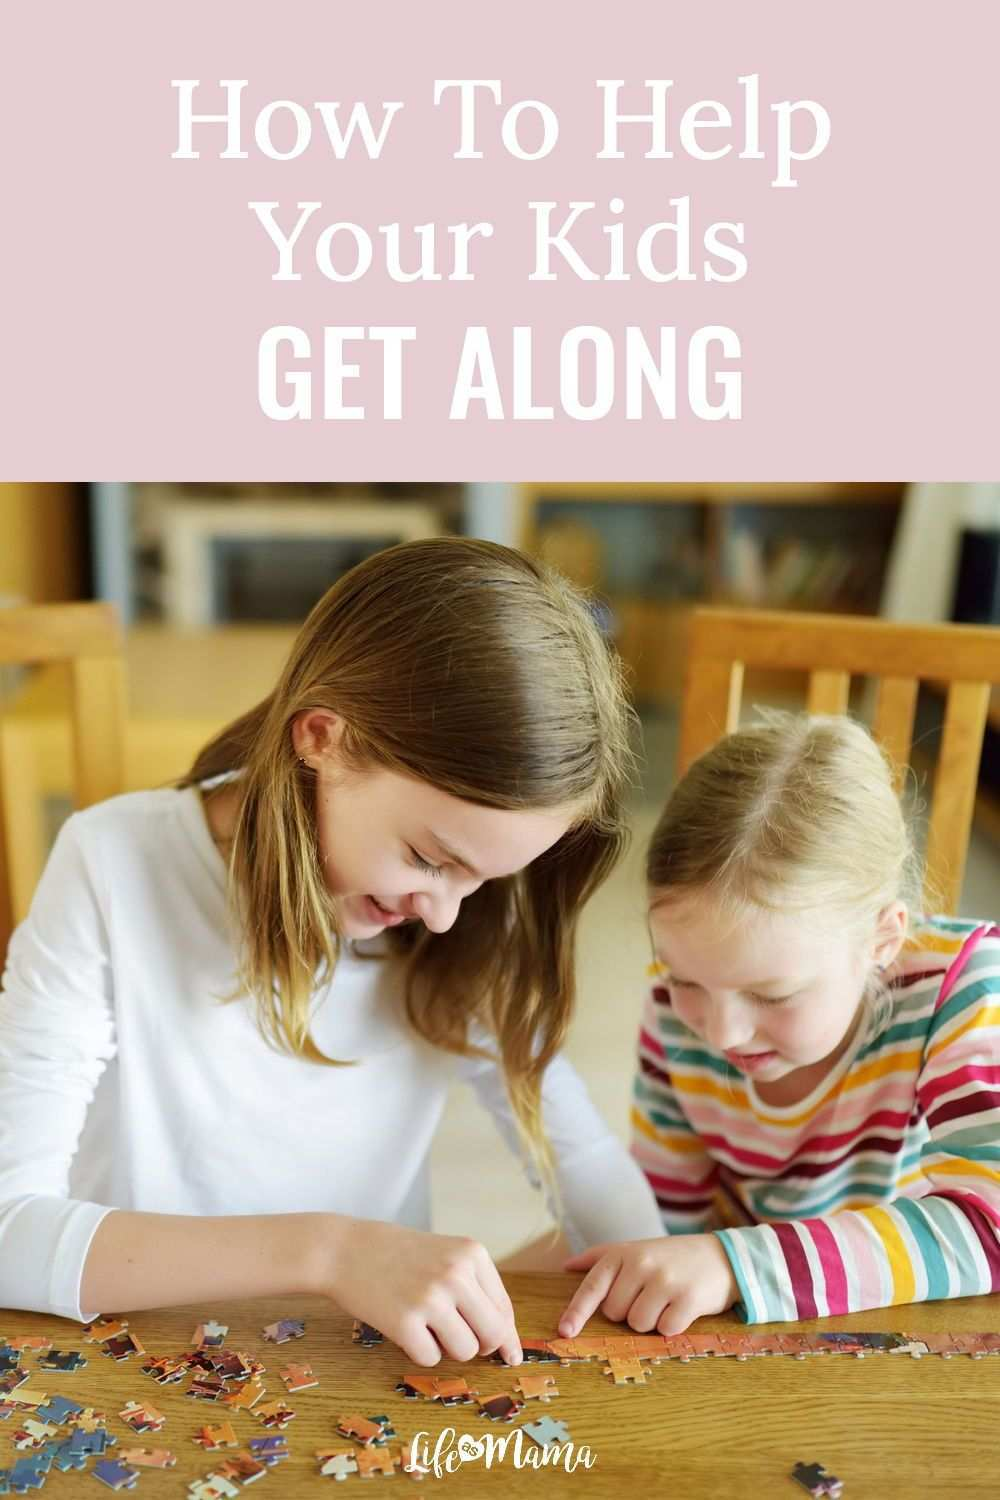 6 Ways To Stop Sibling Fighting And Help Your Kids Get Along In 2020 Sibling Fighting Difficult Children Parenting Hacks